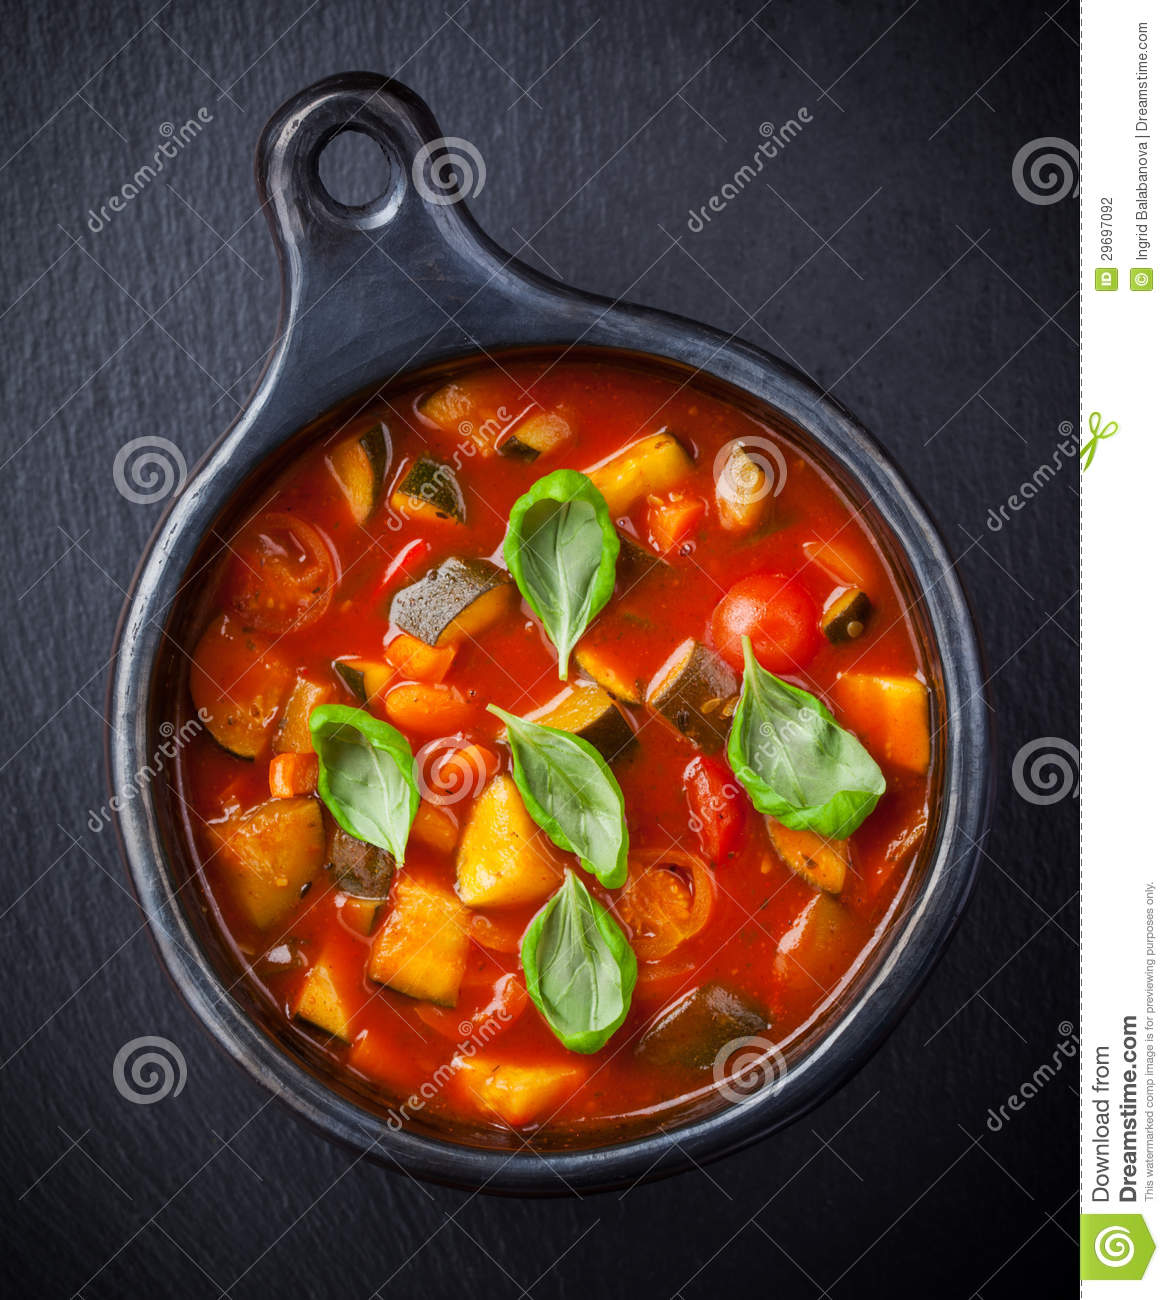 Minestrone Soup Dinner Royalty-Free Stock Photo | CartoonDealer.com ...